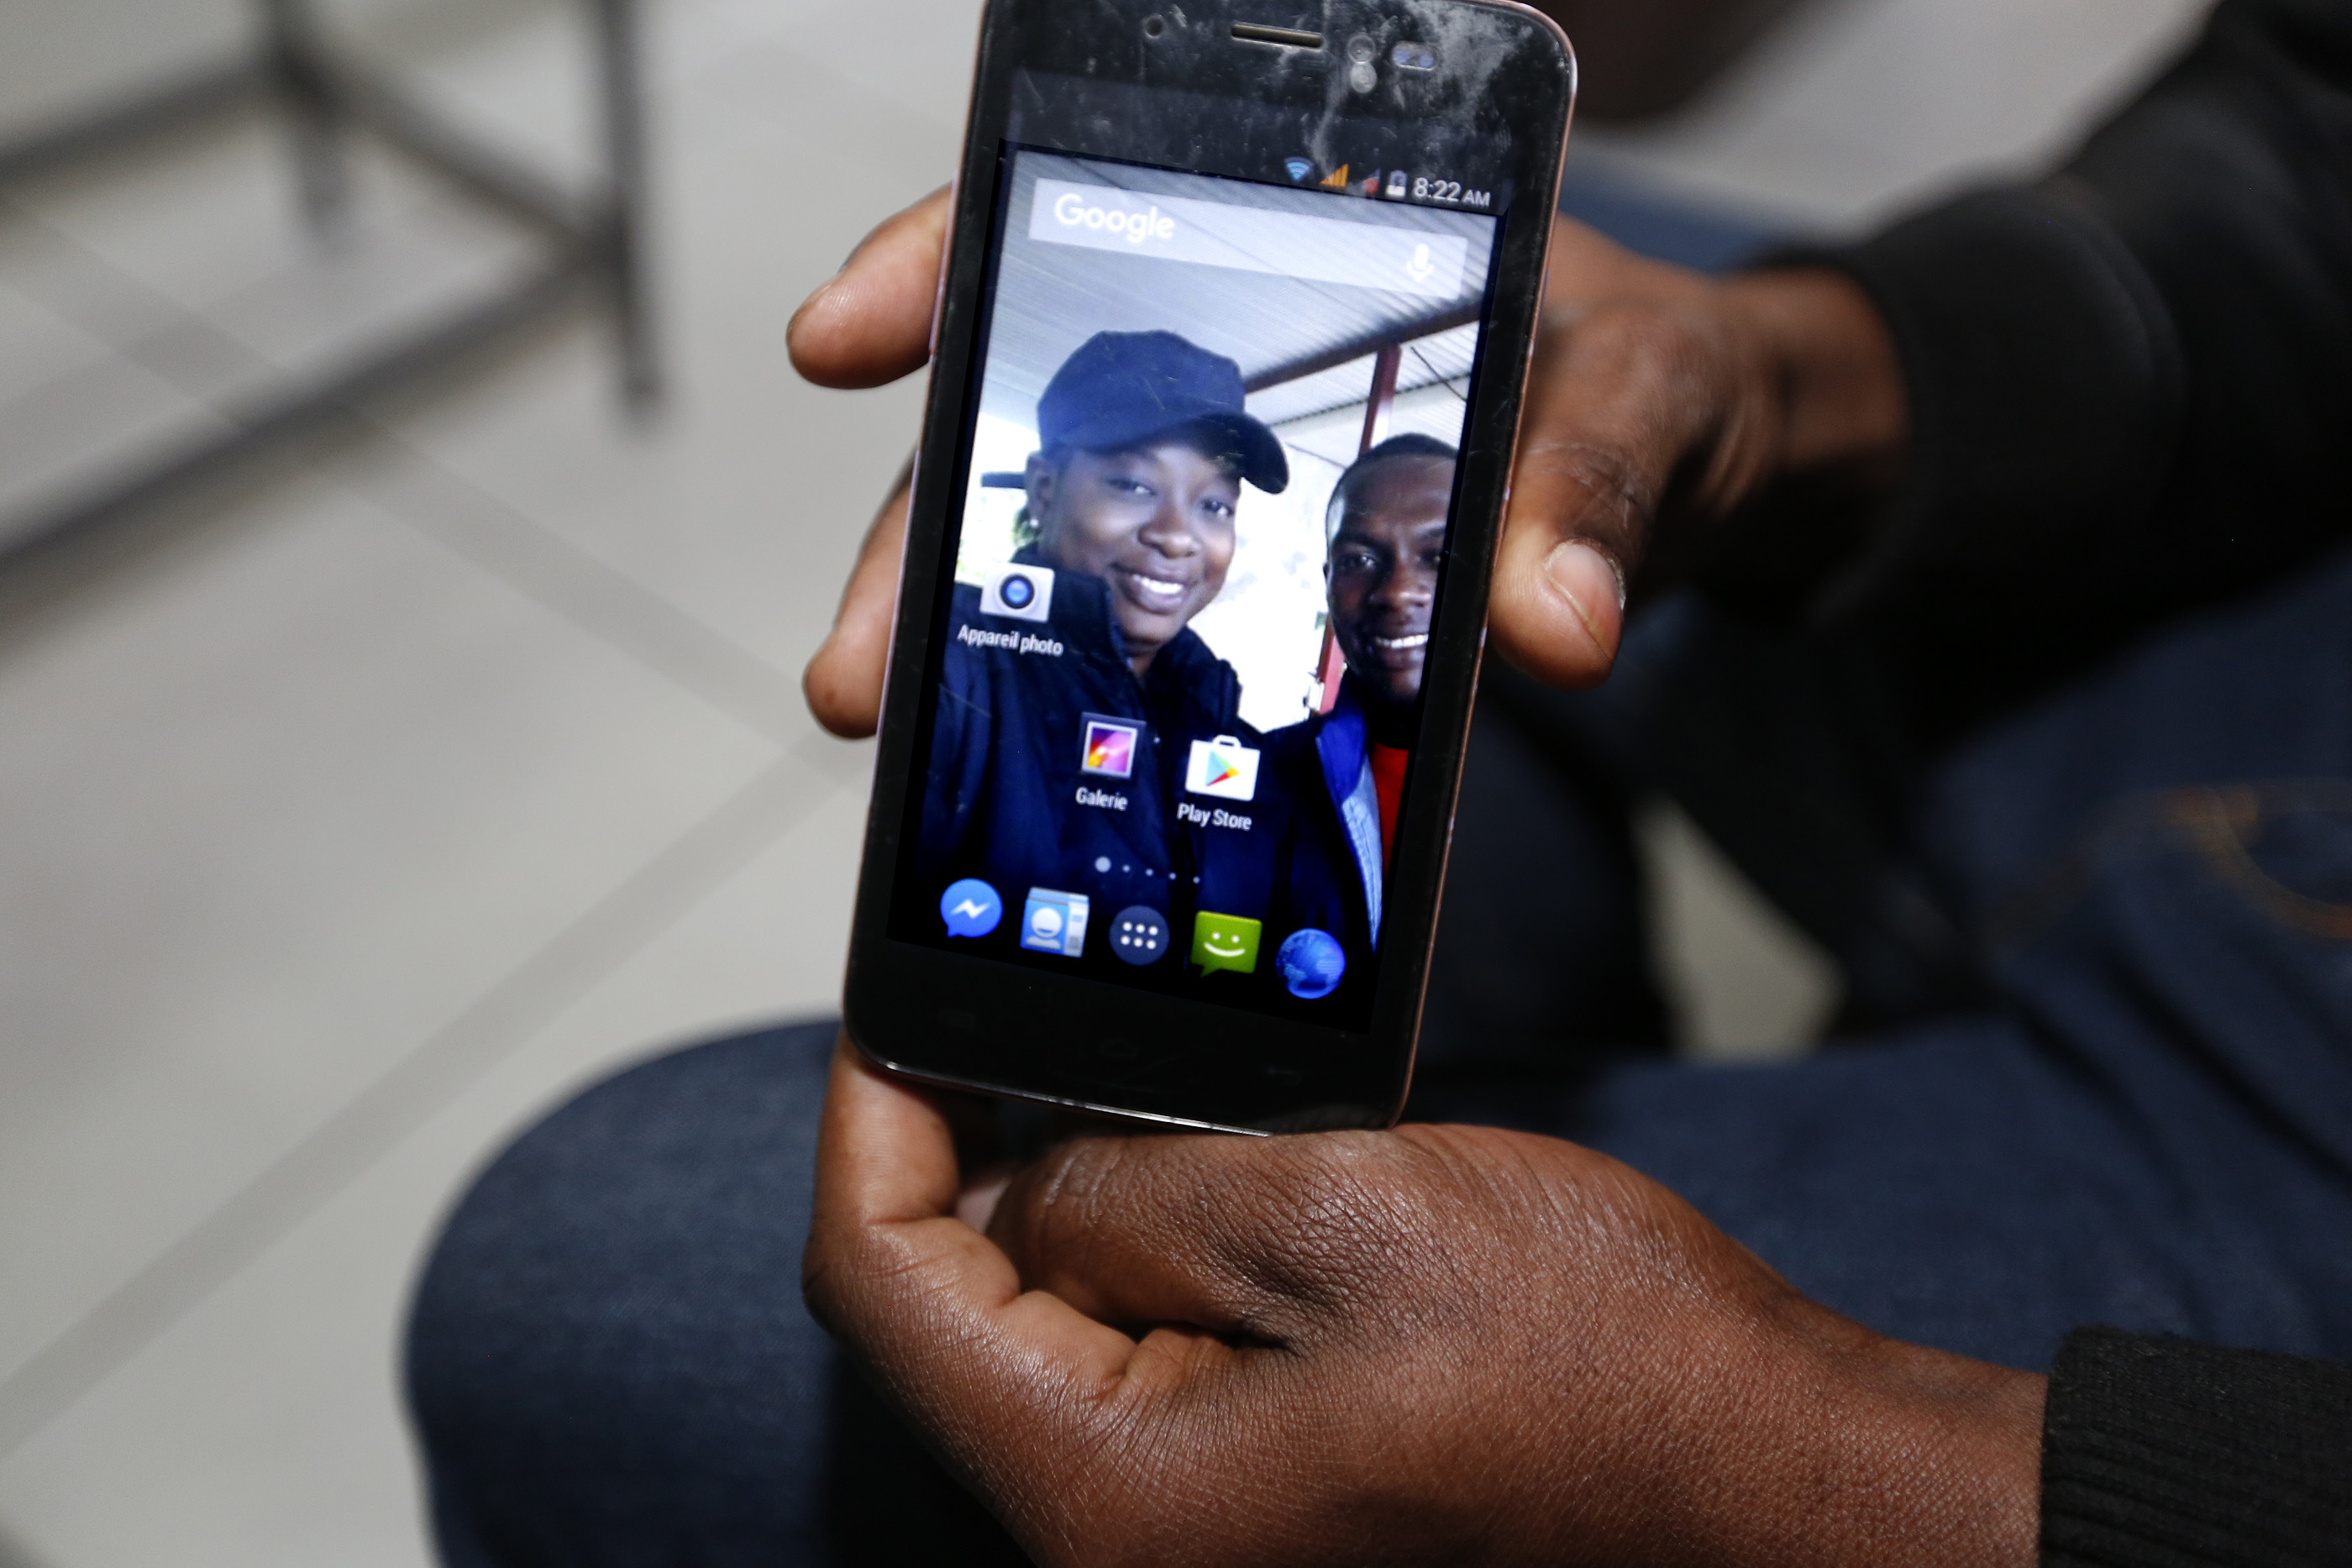 12/08/16/ TIJUANA/Haitian Lazarre John Arold shows a picture of his wife. Lazarre is among a handful of refugees who have decided to stay in Tijuana, Mexico. Haitian Lazarre John Arold receives help at the Salvation Army in Tijuana. An unprecedented arrival of Haitians and others seeking entry into the United States in recent weeks has sent Tijuanas migrant shelters scrambling to find beds, blankets, food and other necessities to serve this increase of people awaiting processing by U.S. authorities. (Photo Aurelia Ventura/ La Opinion)